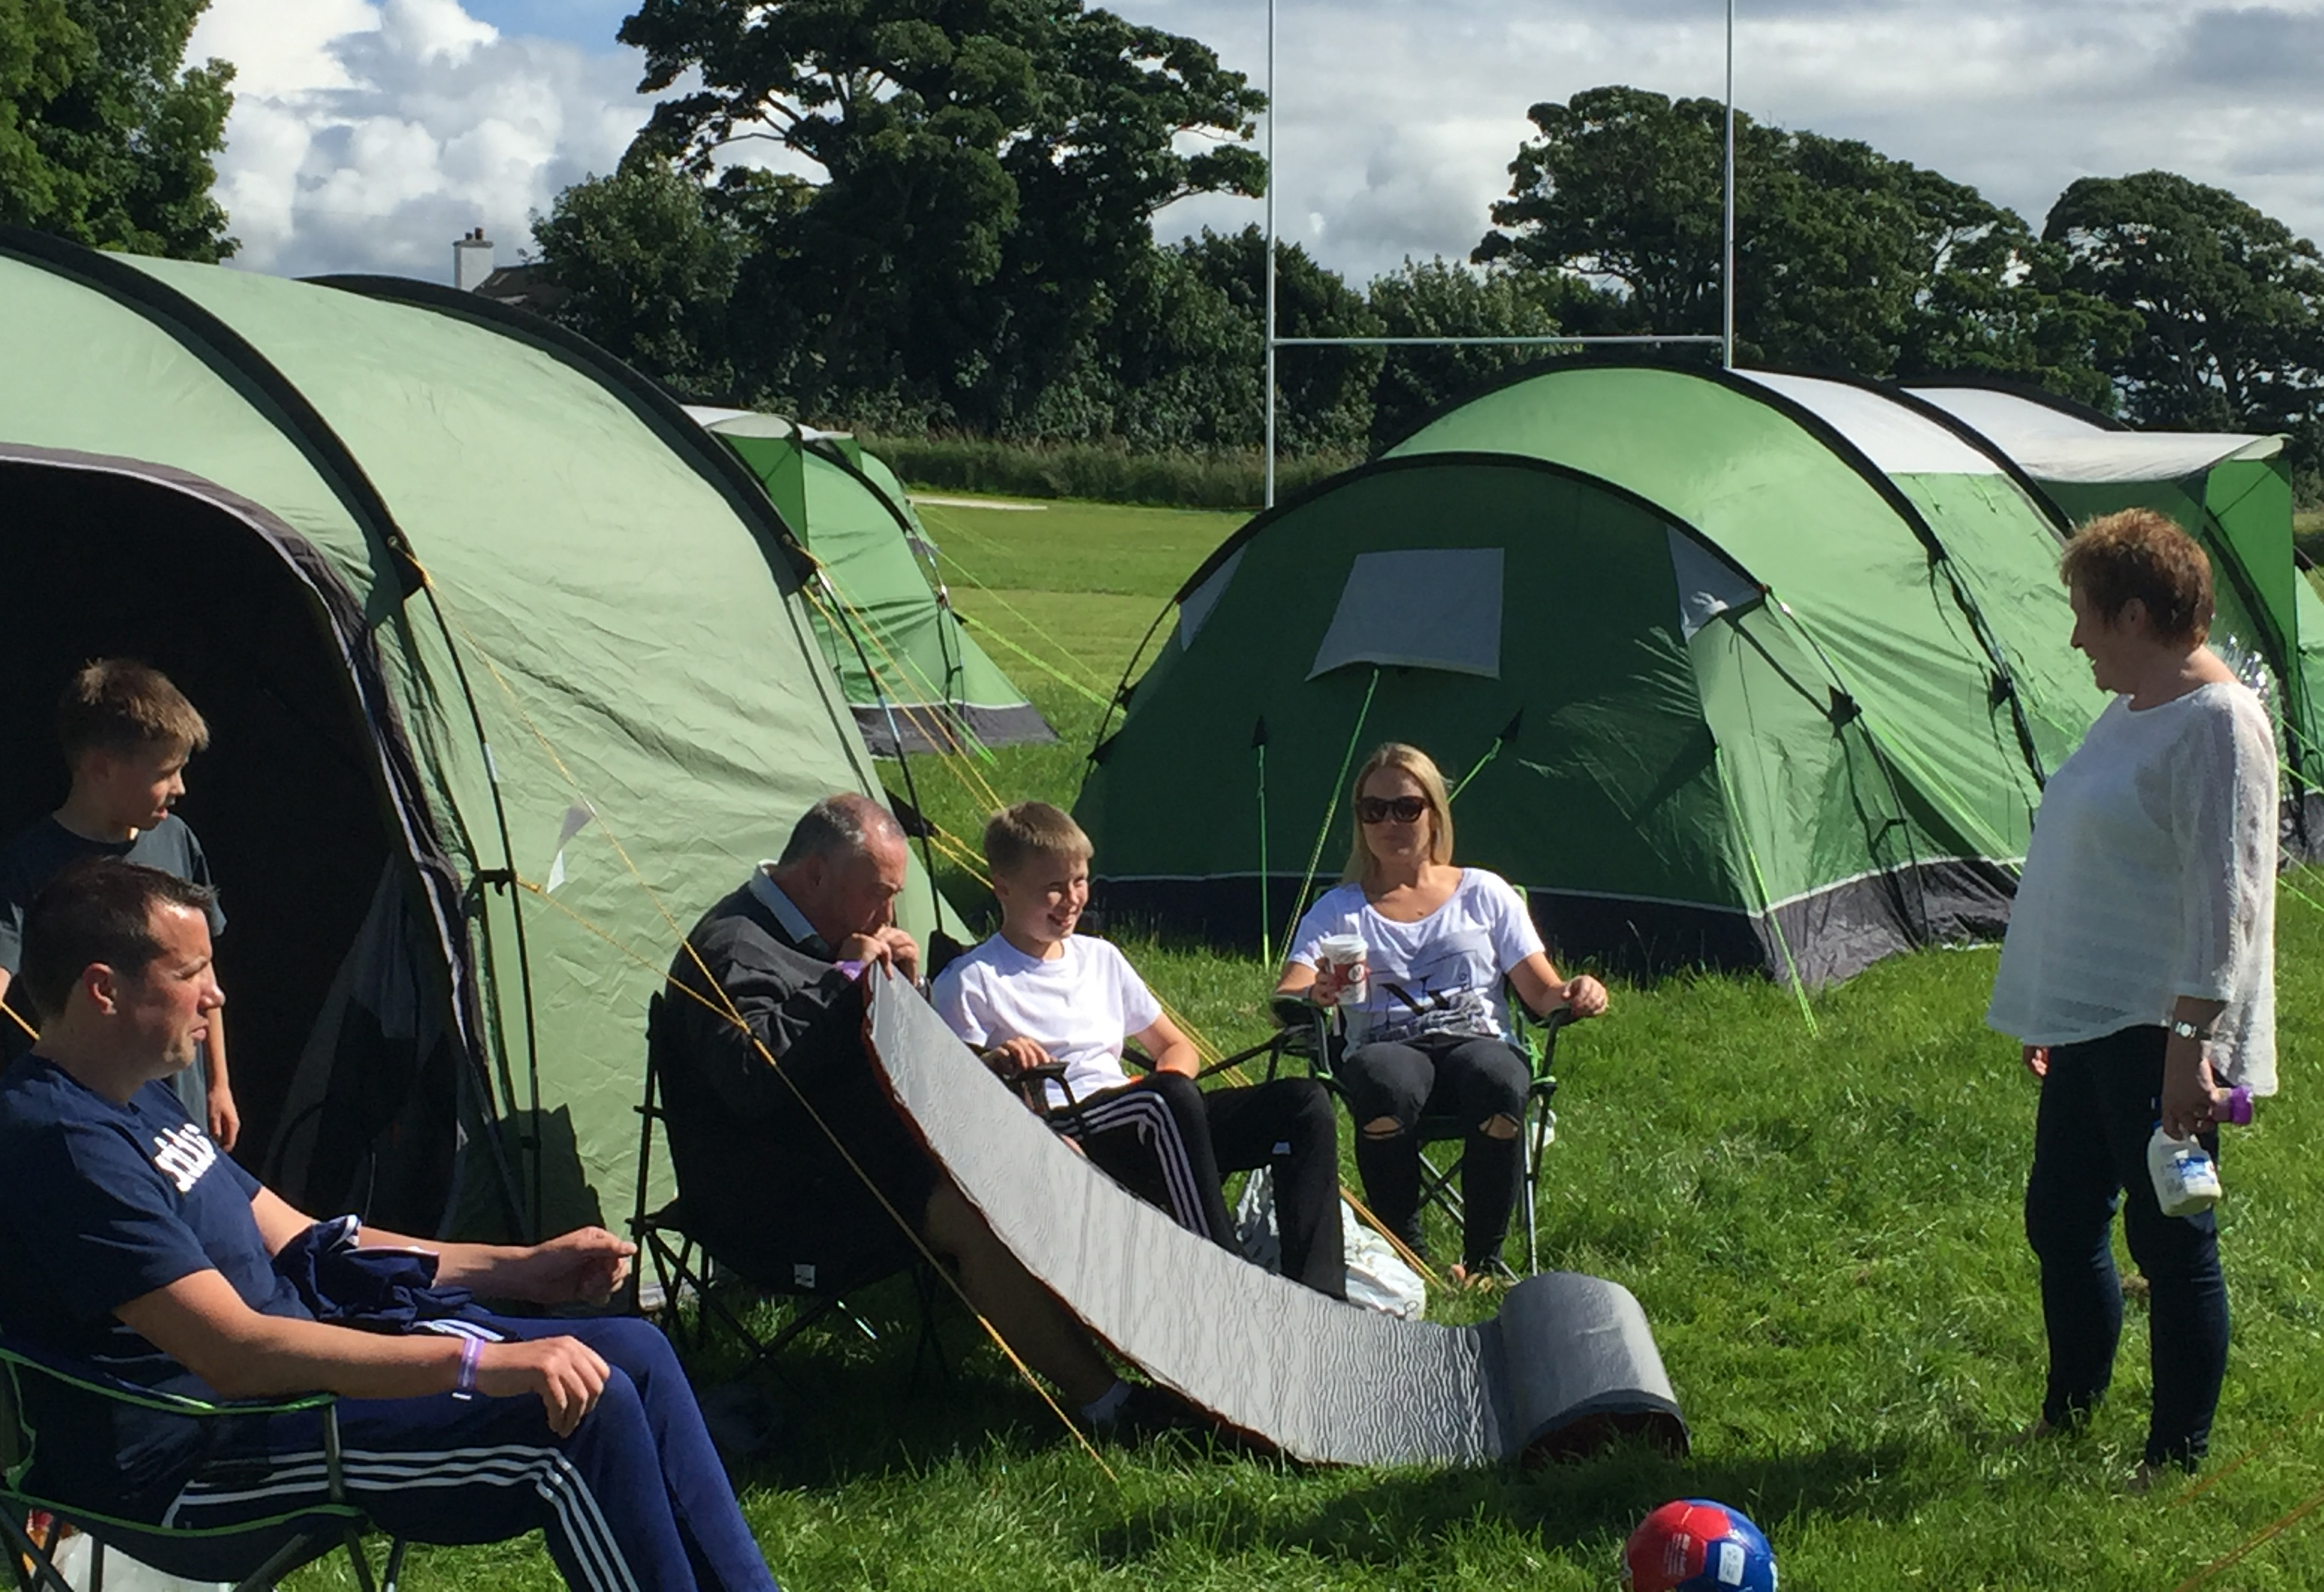 People sit outside their tent at the Marr Rugby Club in Troon, Scotland, Wednesday, July 13, 2016. For the first time, the R&A is giving a small group of fans the chance to camp out during the British Open, making things much more affordable for families